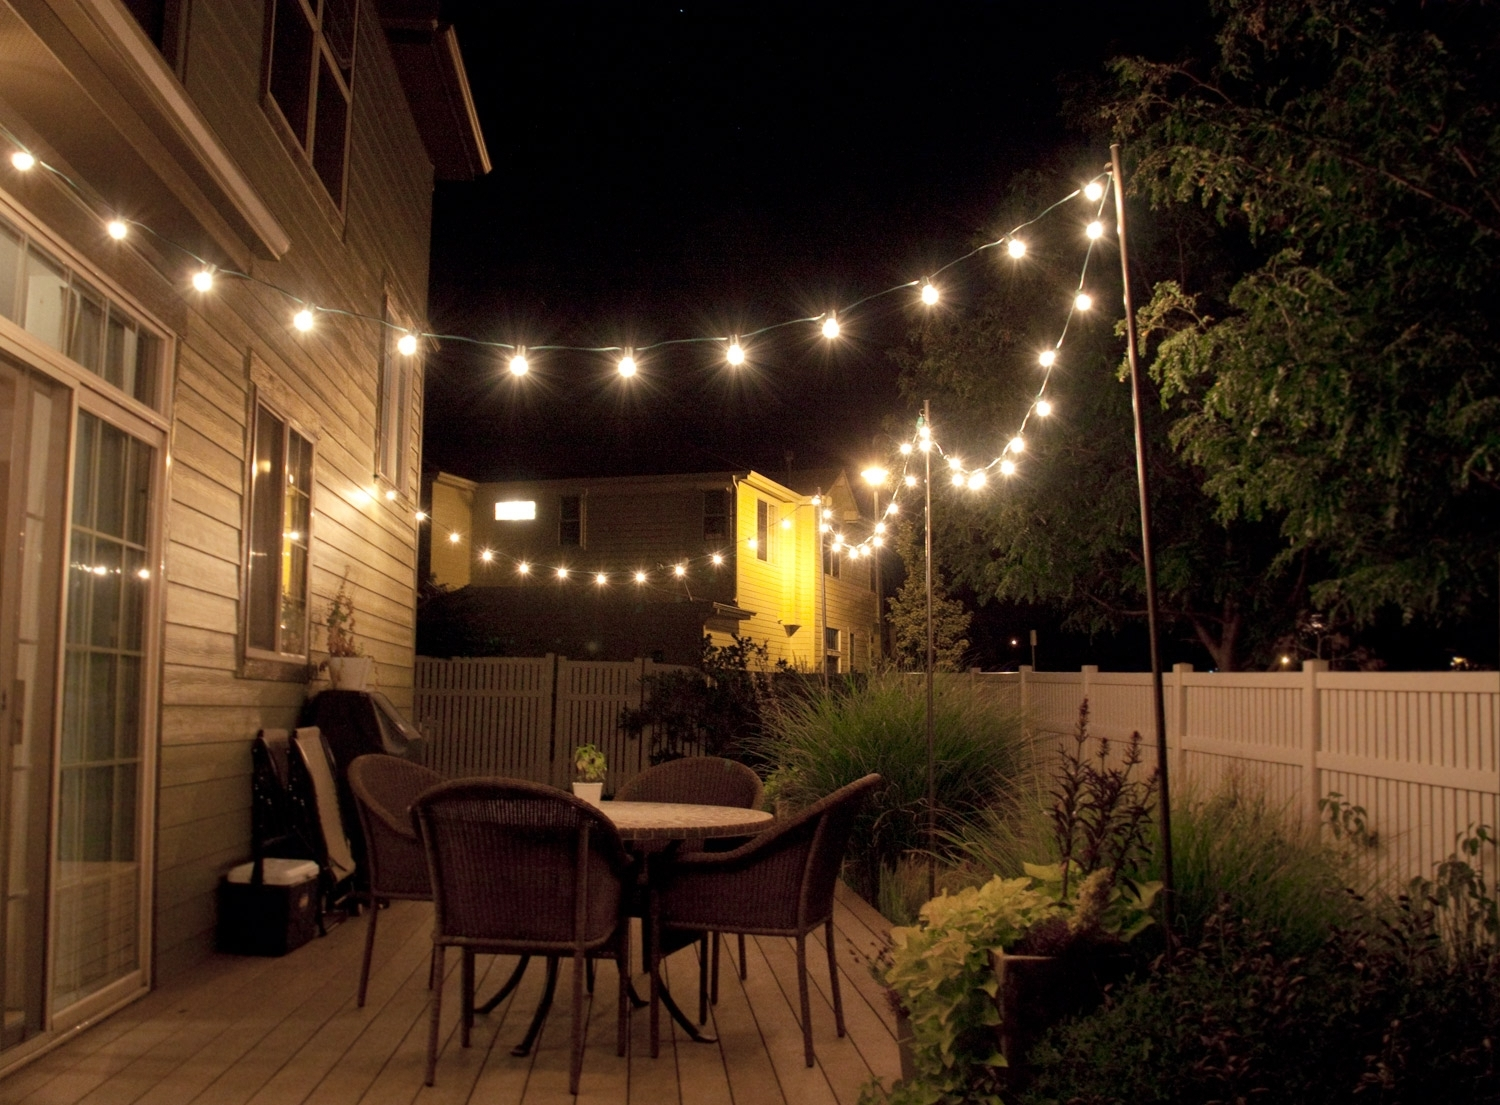 Outdoor Yard Lanterns In Widely Used Outdoor Yard Lighting Ideas – Patio Design And Yard (View 4 of 20)